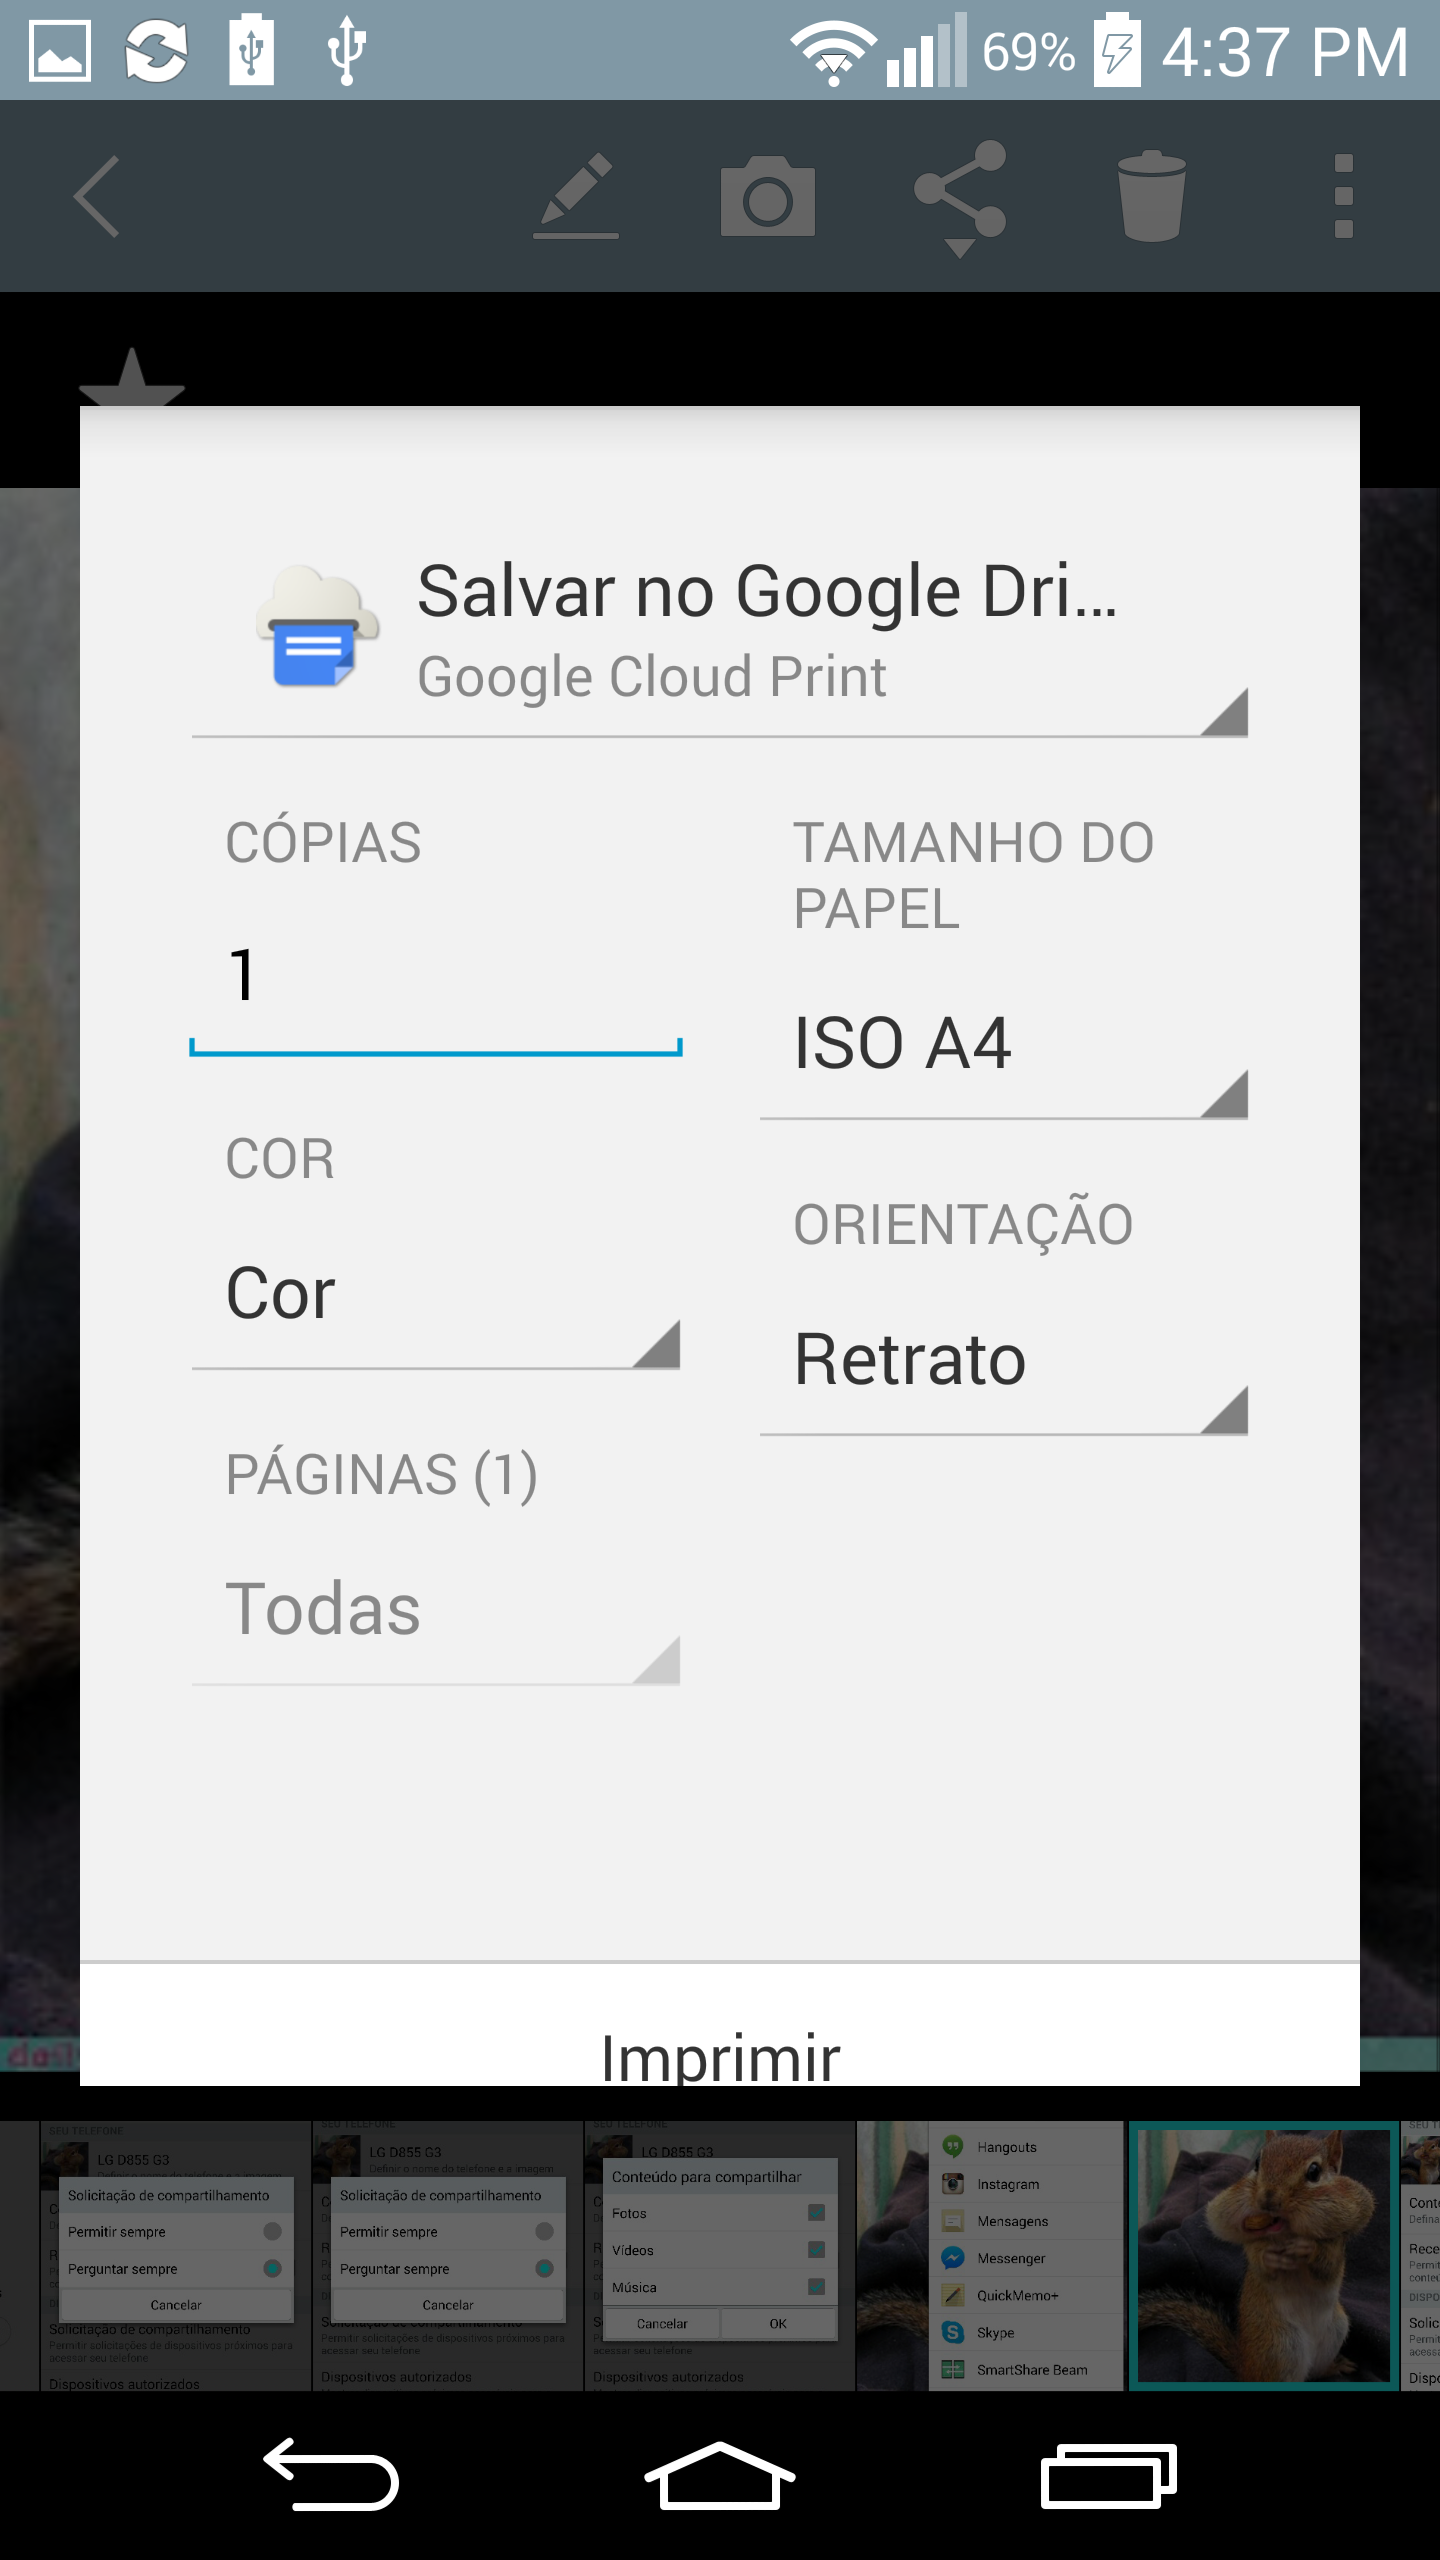 Salvar no Google Drive